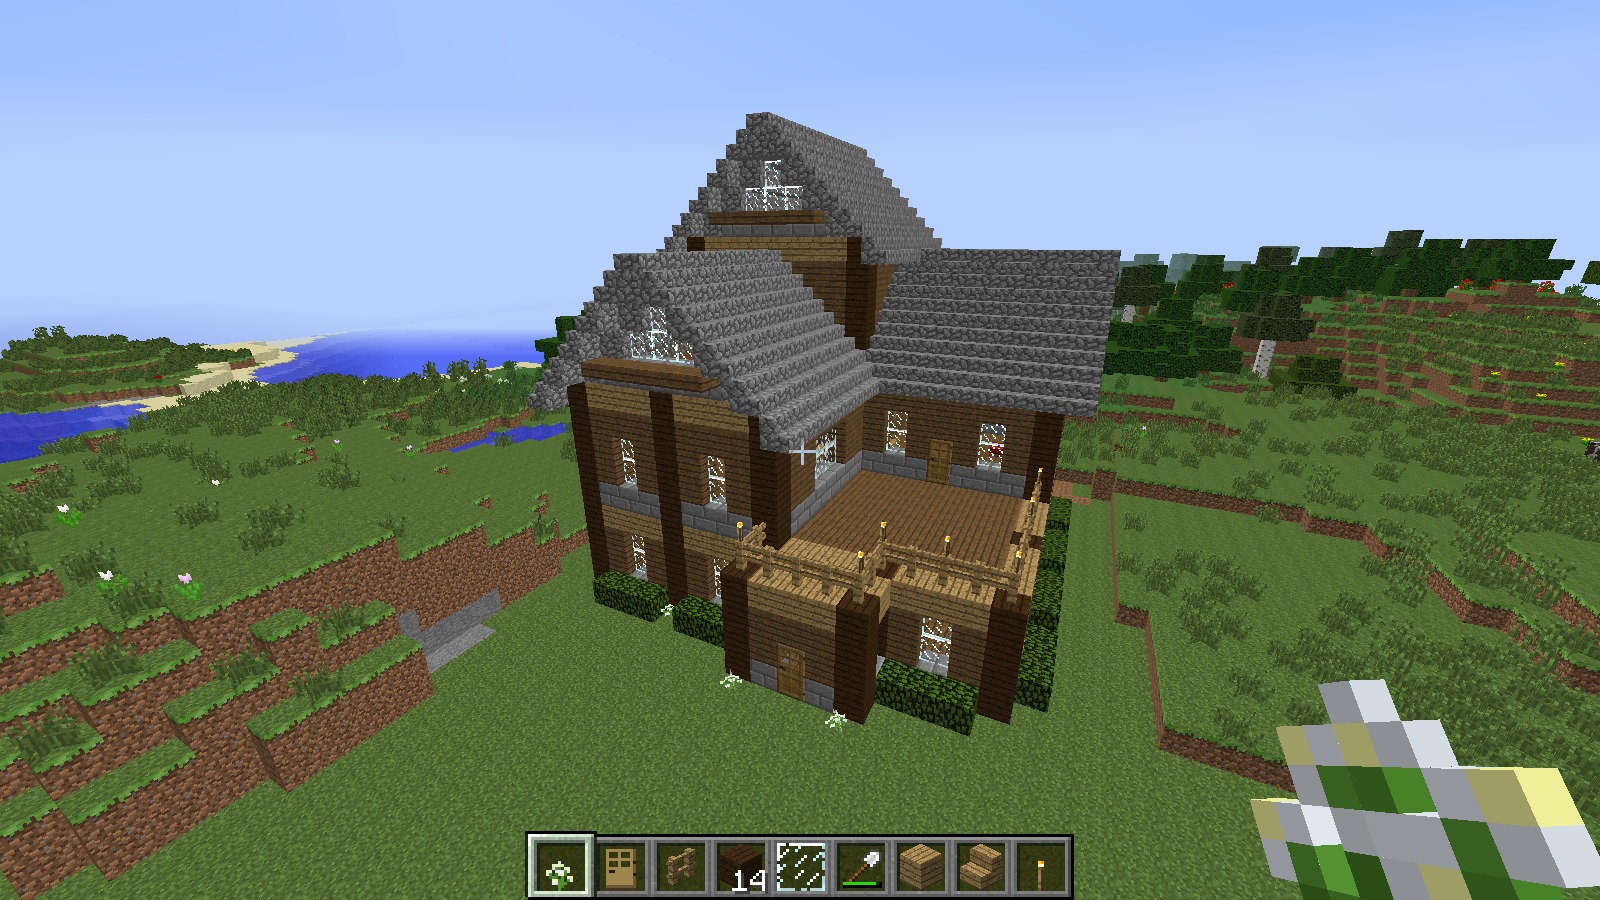 New minecraft house 3 by lyra elante on deviantart for Modern house xbox minecraft